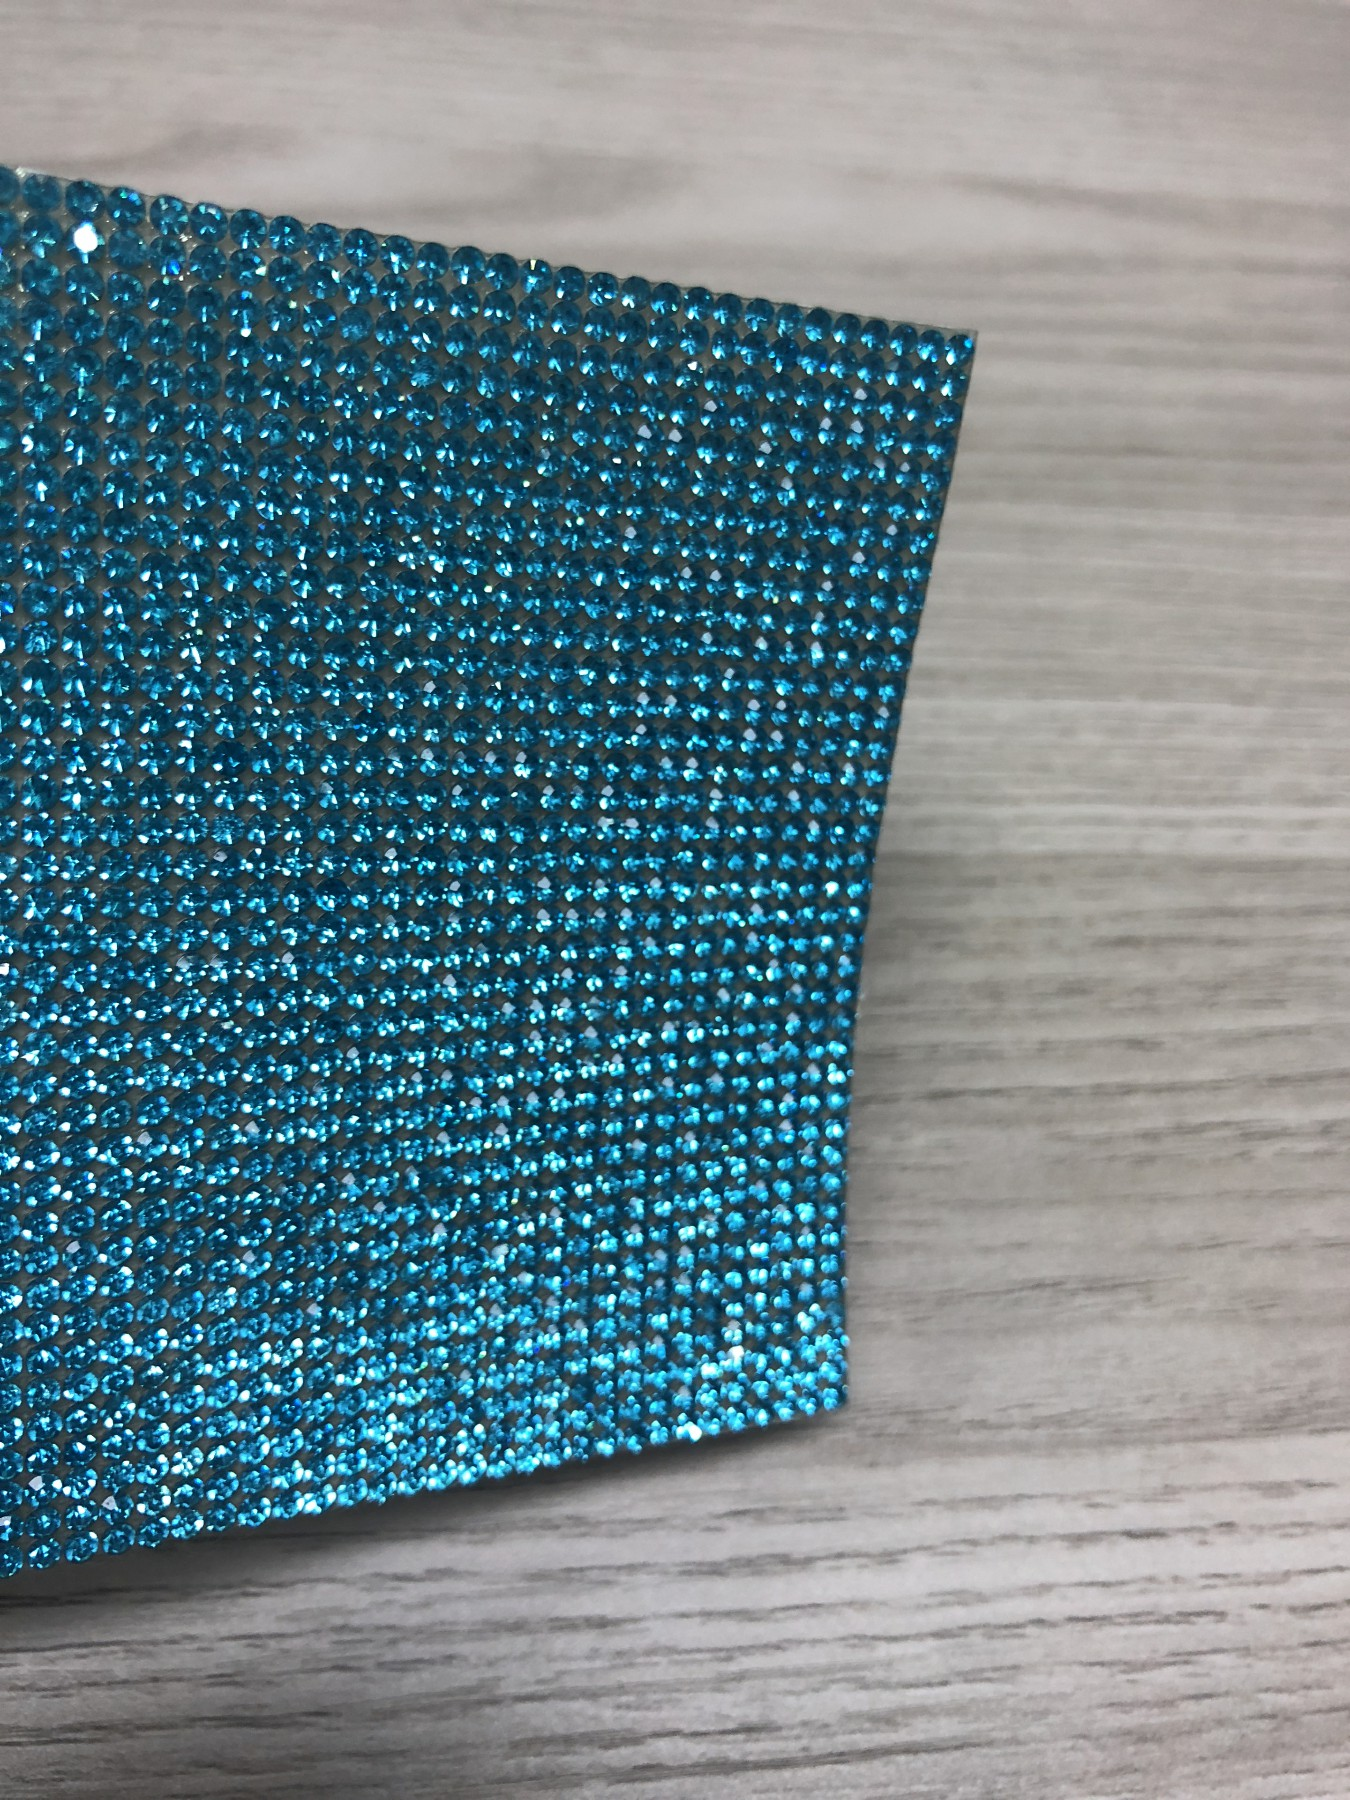 Good Smell Bling Adhesive Rhinestone Sheet Sticker